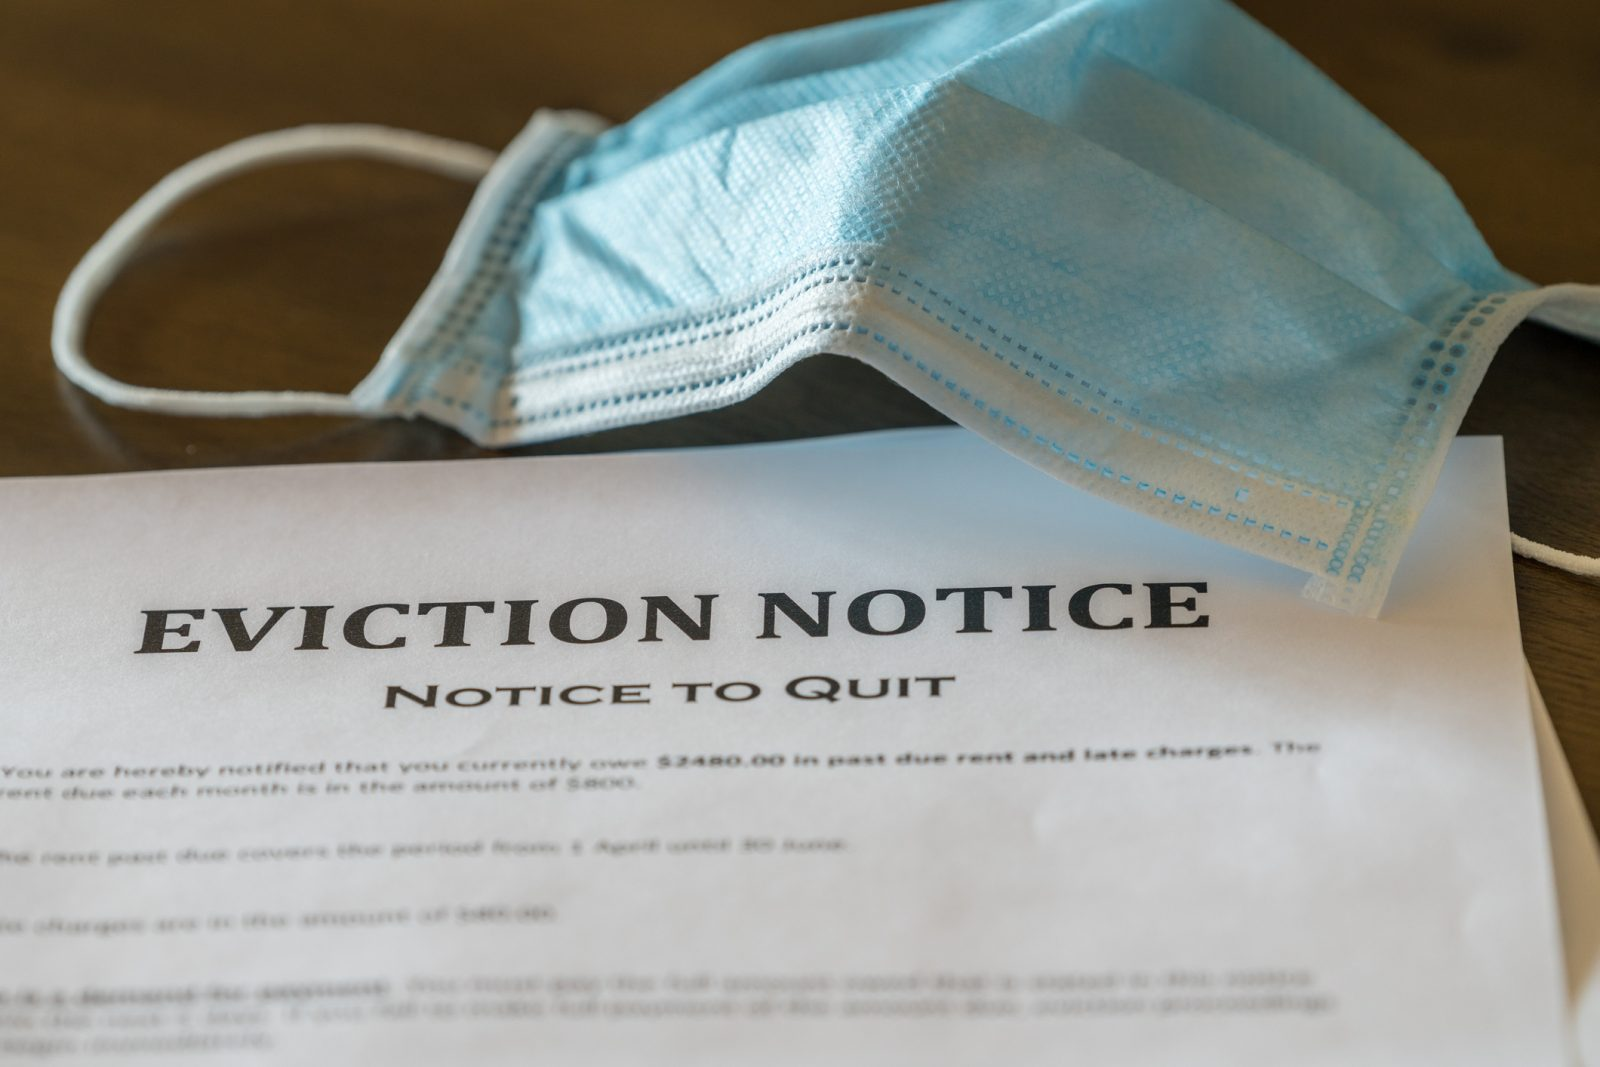 Supreme Court Overrules CDC on Issue of Eviction Moratoriums